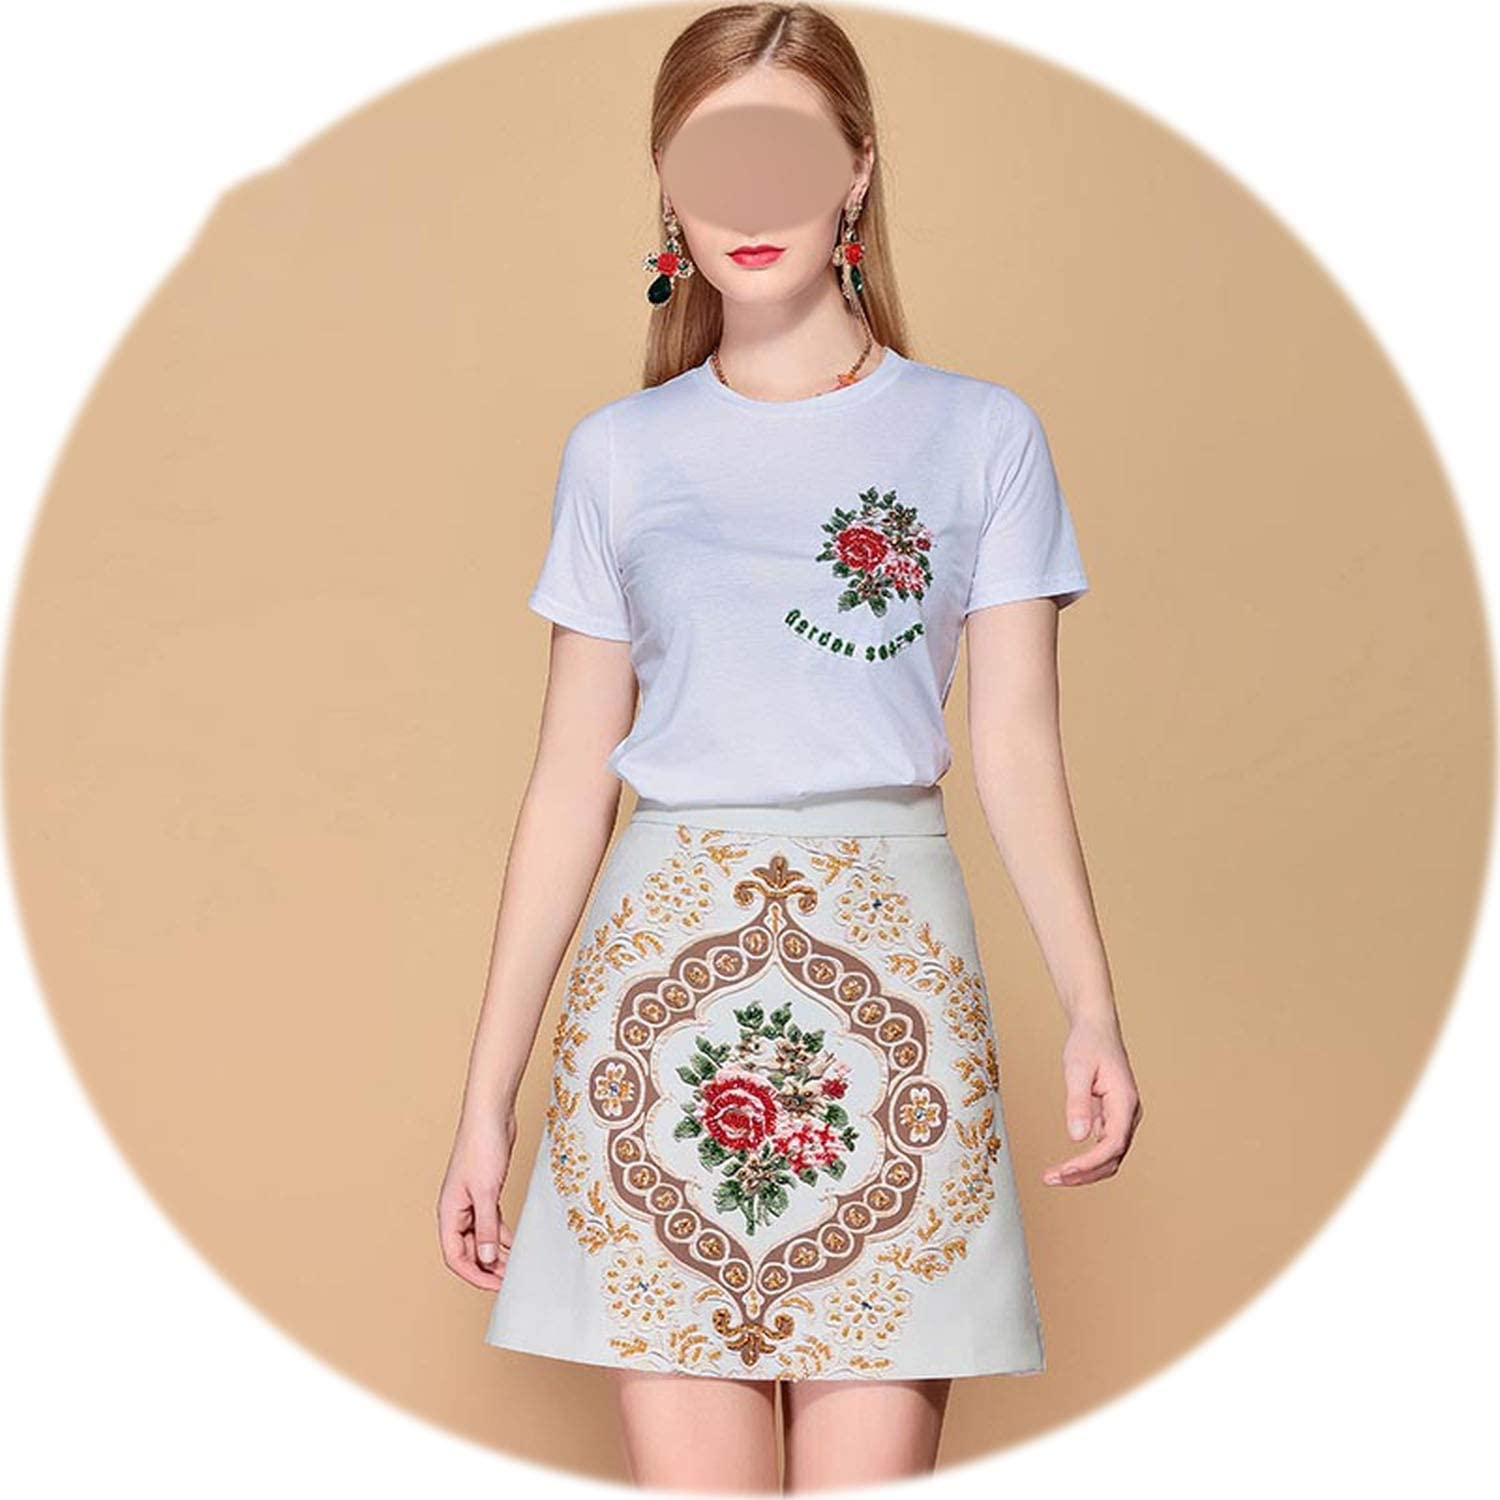 Rather be Fashion Vintage Mini Skirt 2 Two Pieces Women's TShirt and Gorgeous Crystal Beading Skirts Sets Ladys Suits,Multi,S